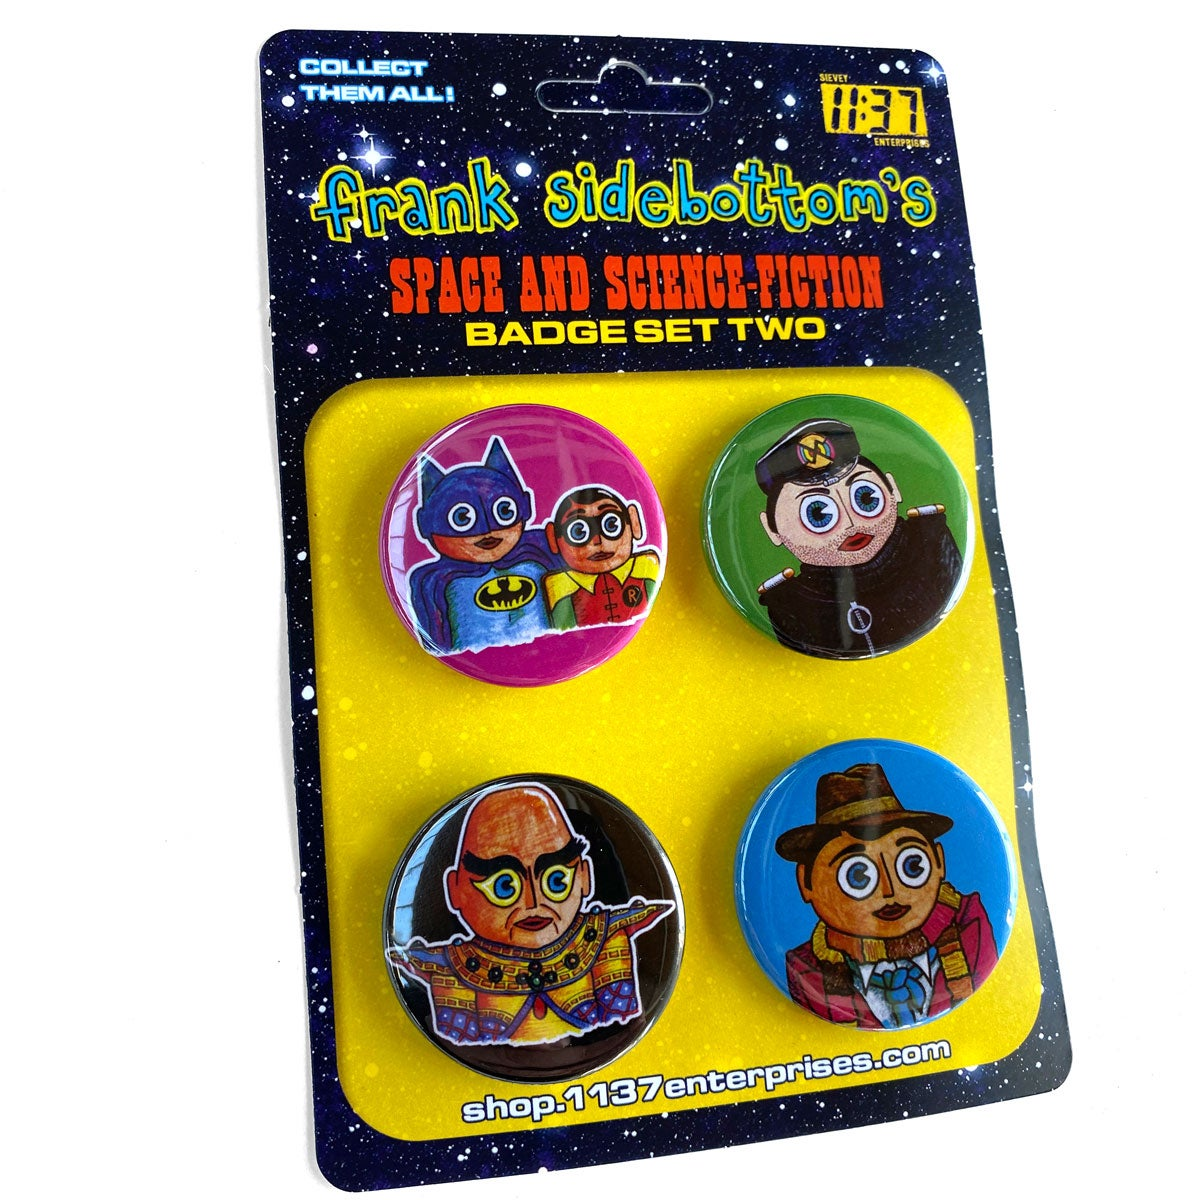 Image of Space and Science Fiction Badge Set 2